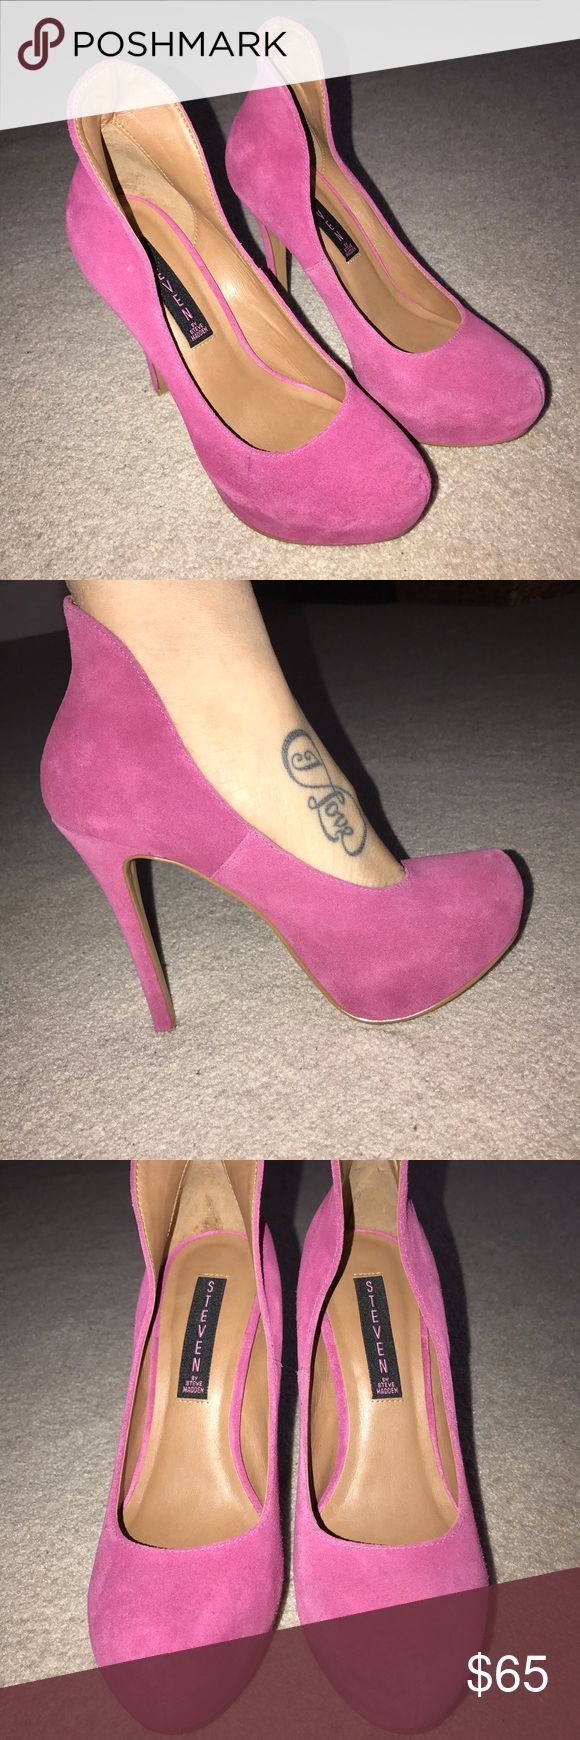 Steve Madden Fuschia High Heels Steve Madden High Heel Shoes. Fuschia Suede very sexy high heels, with a high back. Comfortable and stylish! Excellent condition never used! Steve Madden Shoes Heels